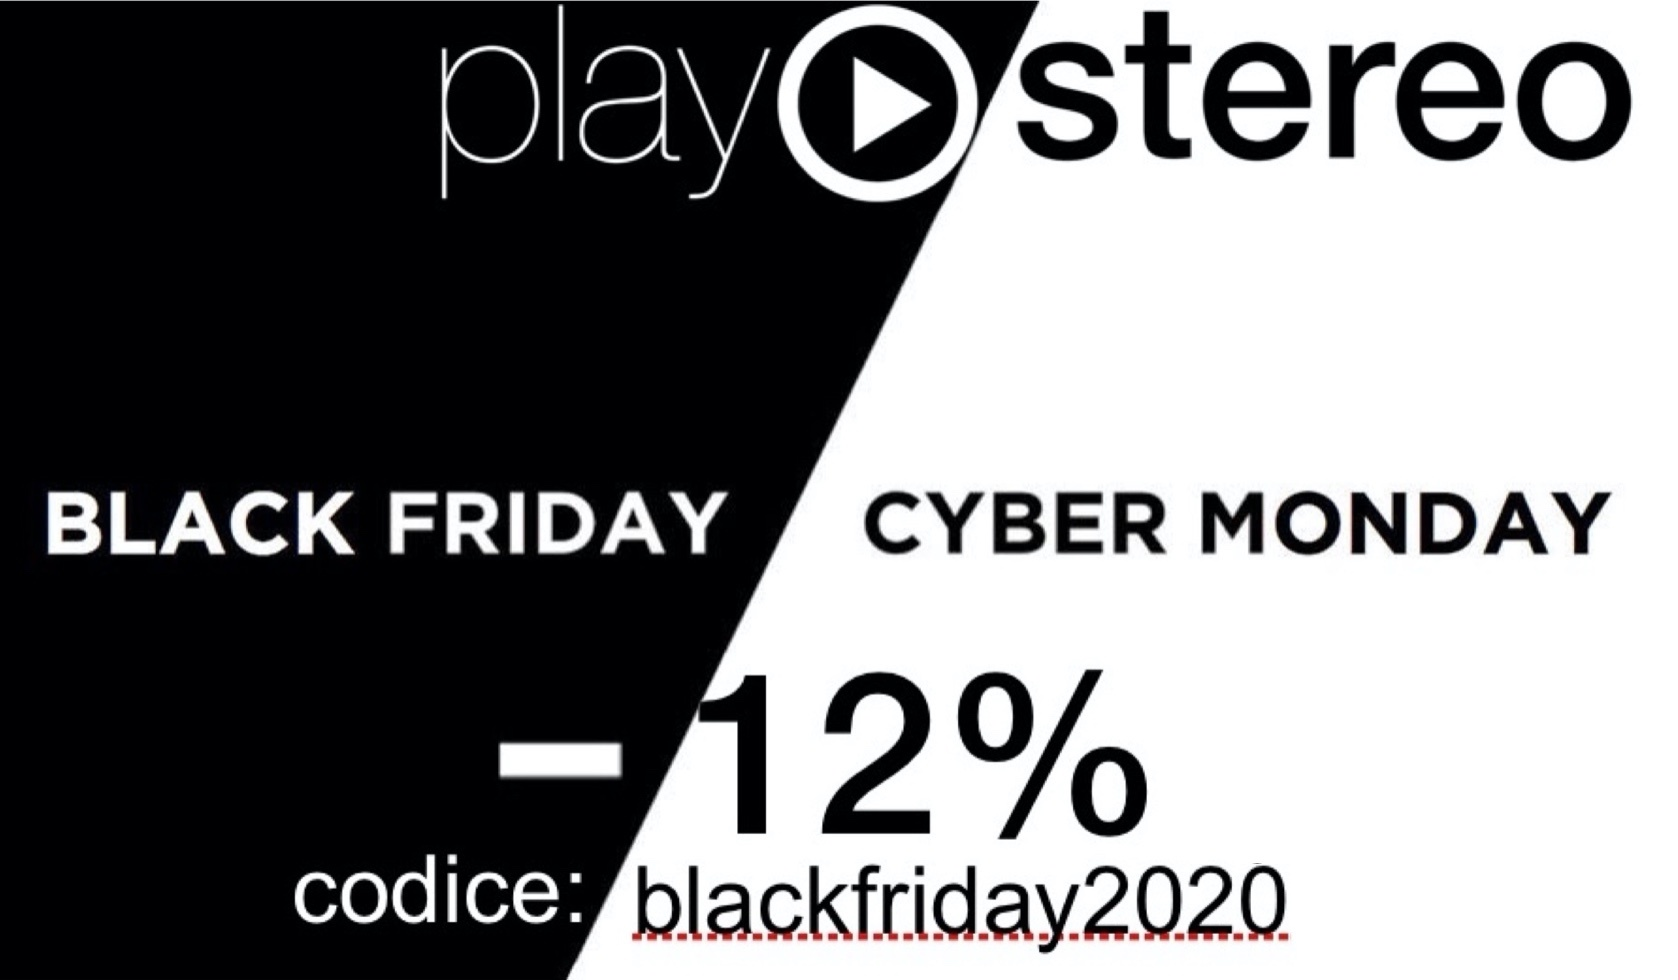 Black Friday / Cyber Monday 2020